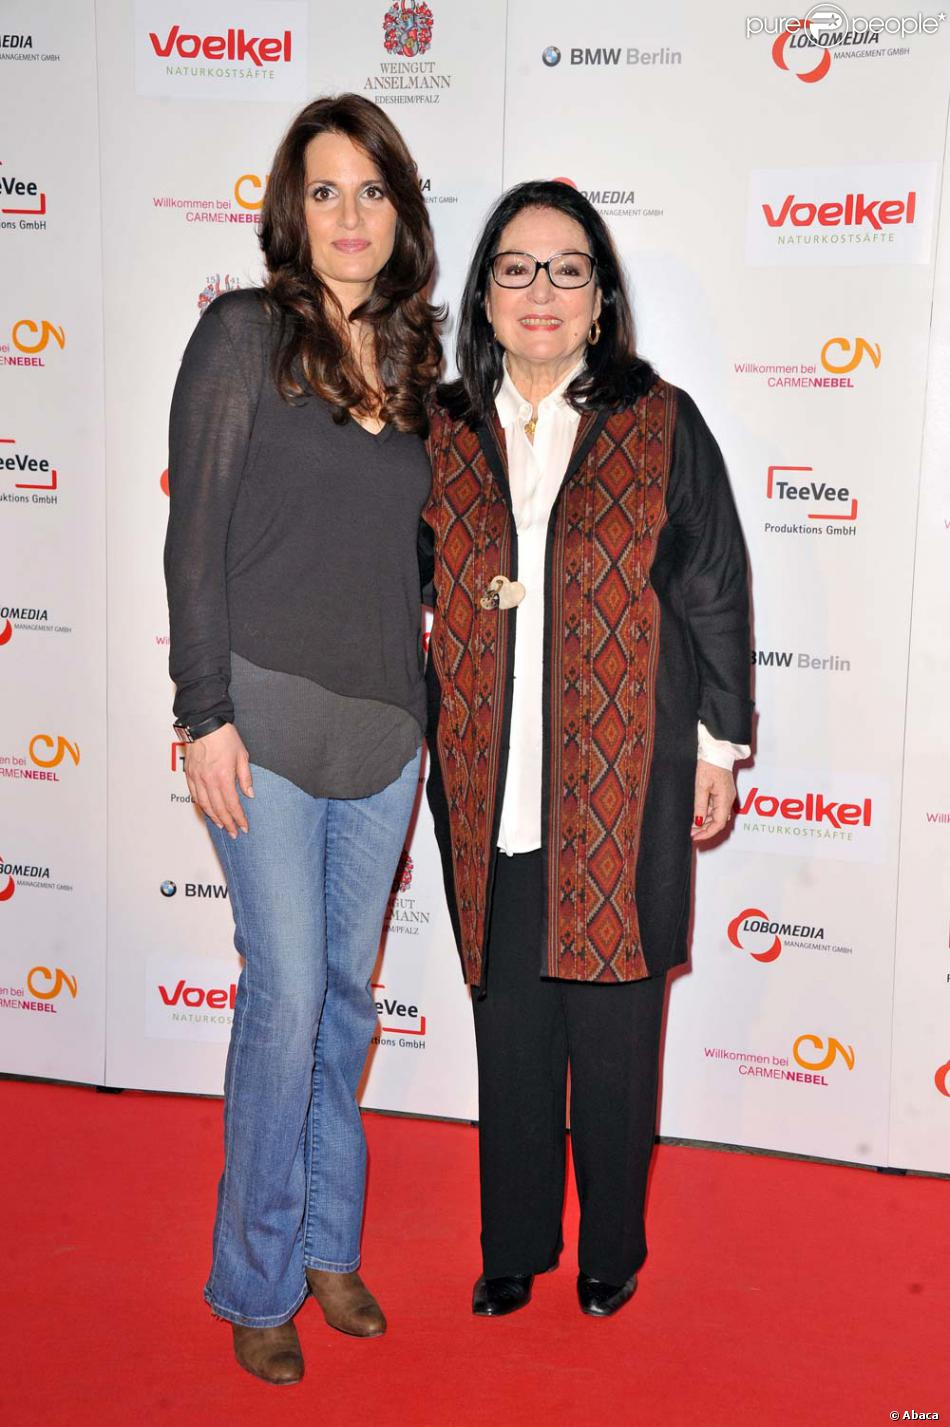 Nana Mouskouri Et Sa Fille : mouskouri, fille, Mouskouri, Fille, Lenou, Arrivent, Plateau, L'émission, Willkommen, Carmen, Nebel, Berlin,, 2012., Purepeople